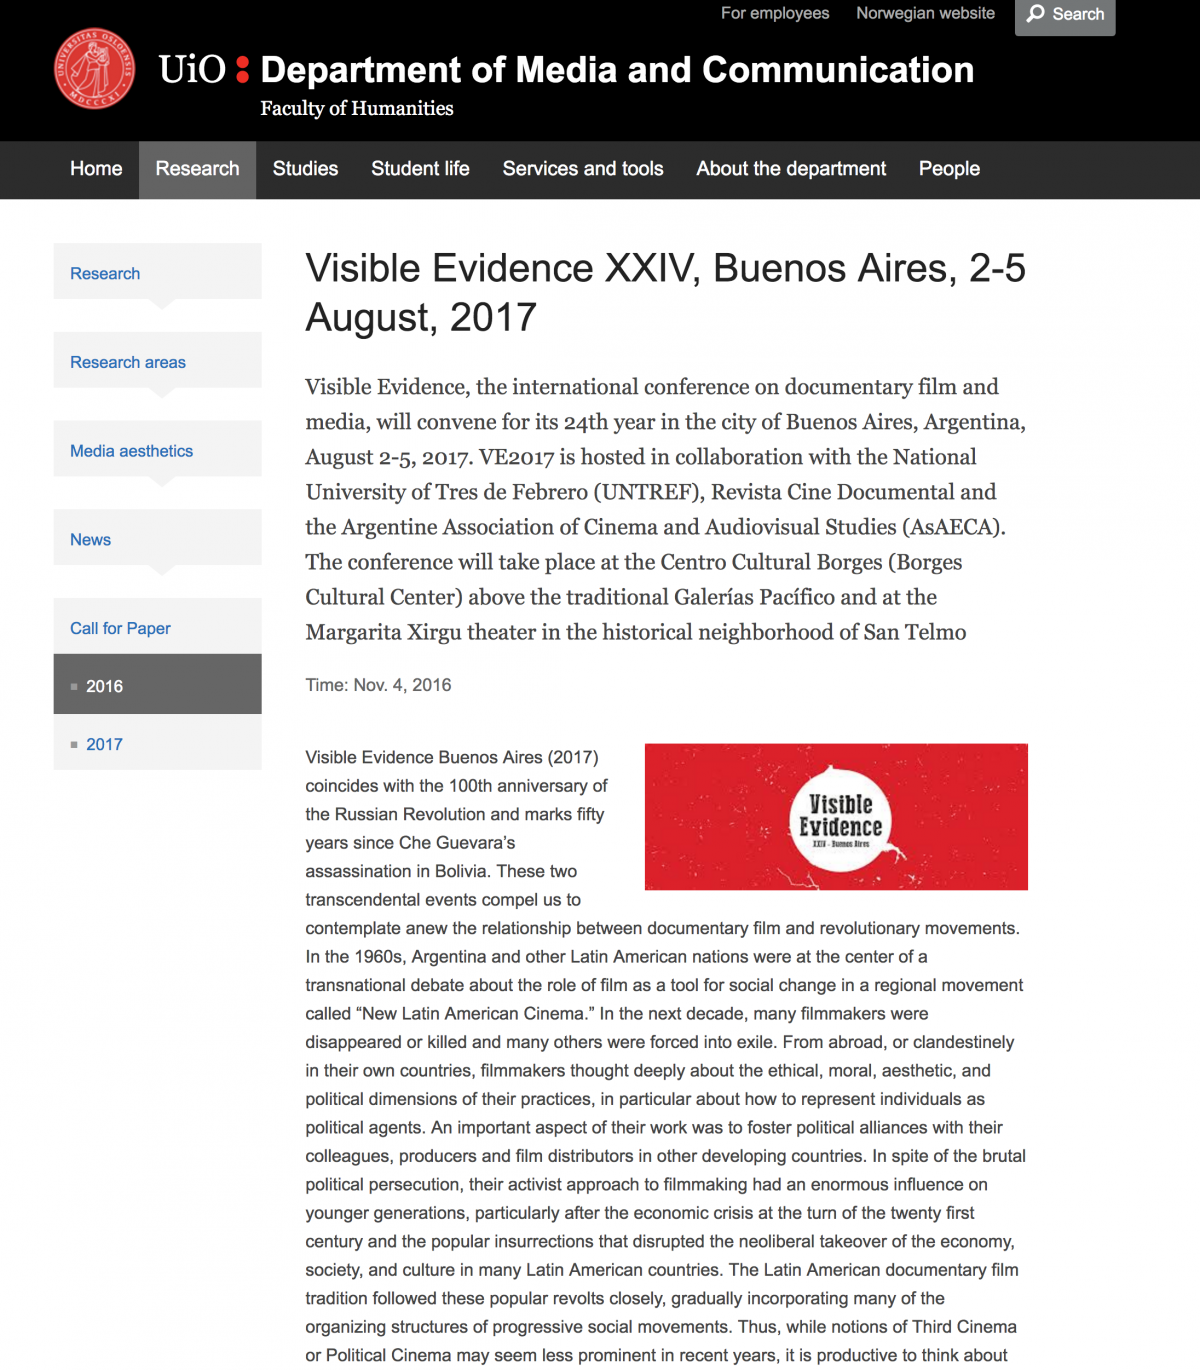 Visible Evidence XXIV Buenos Aires   2 –  5   August 2017